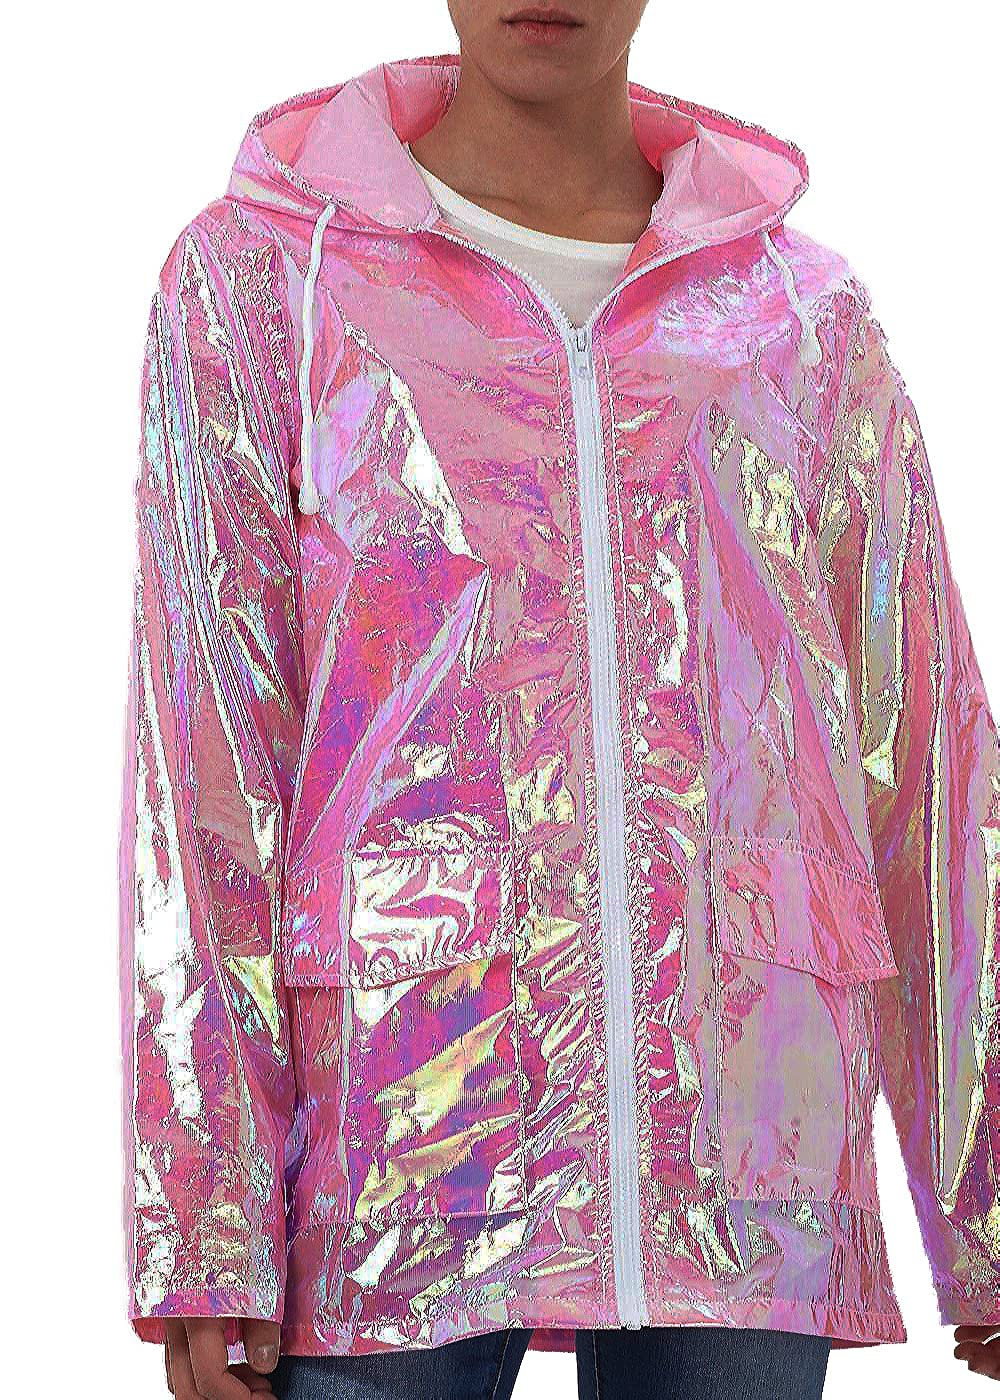 Fuchia boutique Women's Holographic Hooded Festival Rain Mac Light Weight Jacket Raincoat Pink